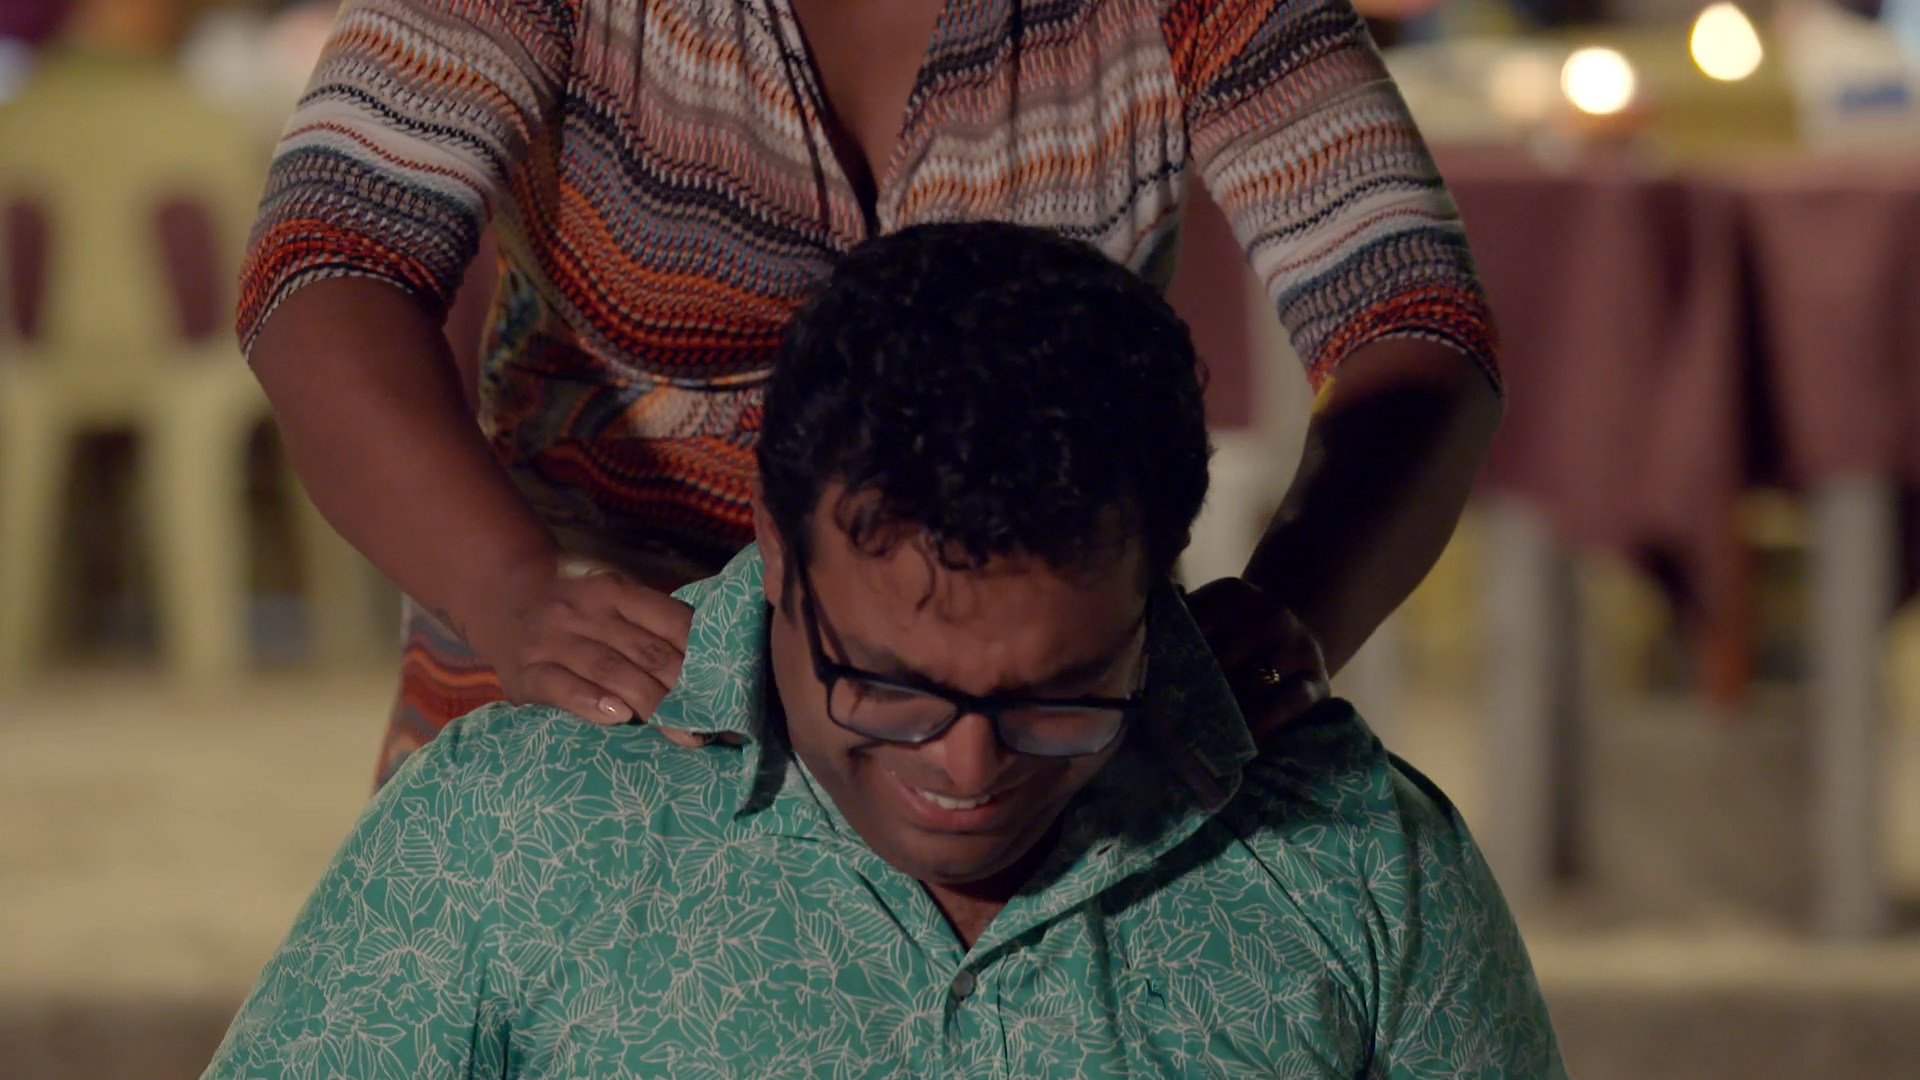 Beach massage gets awkward for Deepesh and Sage